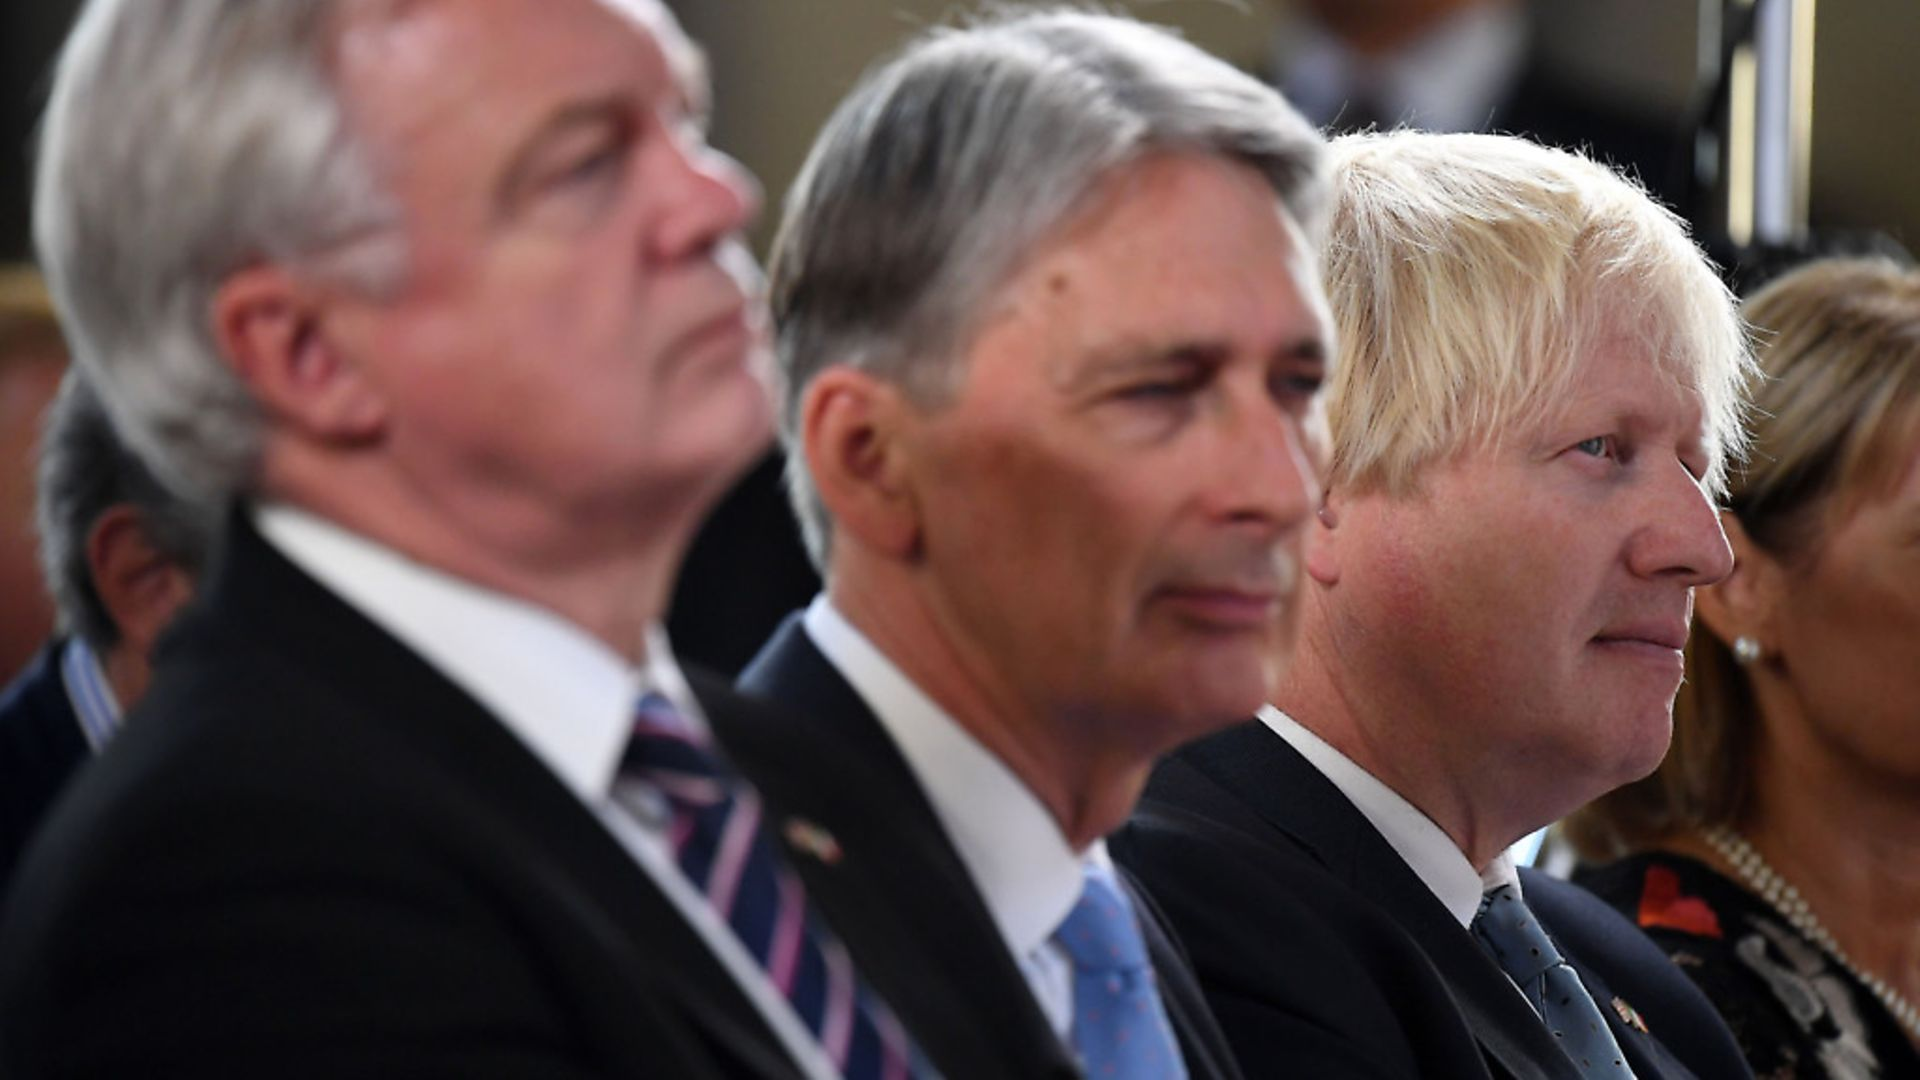 Brexit Secretary David Davis, Chancellor Philip Hammond and Foreign Secretary Boris Johnson listen as Prime Minister Theresa May speaks in Florence, Italy. Photograph: Jeff J Mitchell/PA. - Credit: PA Wire/PA Images